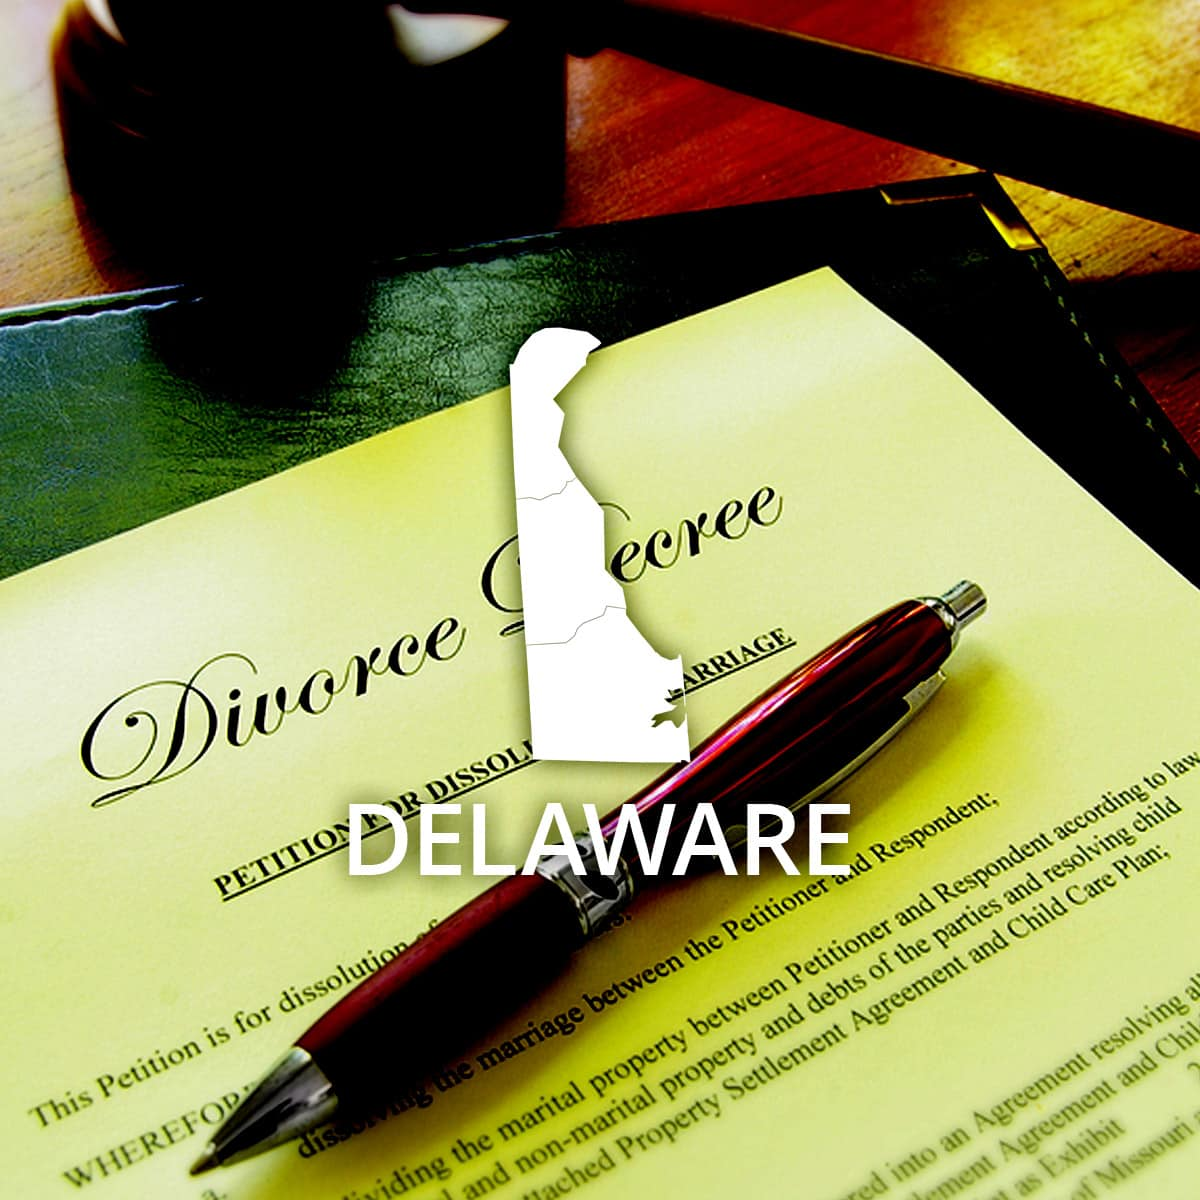 Where to Obtain a Delaware Divorce Certificate